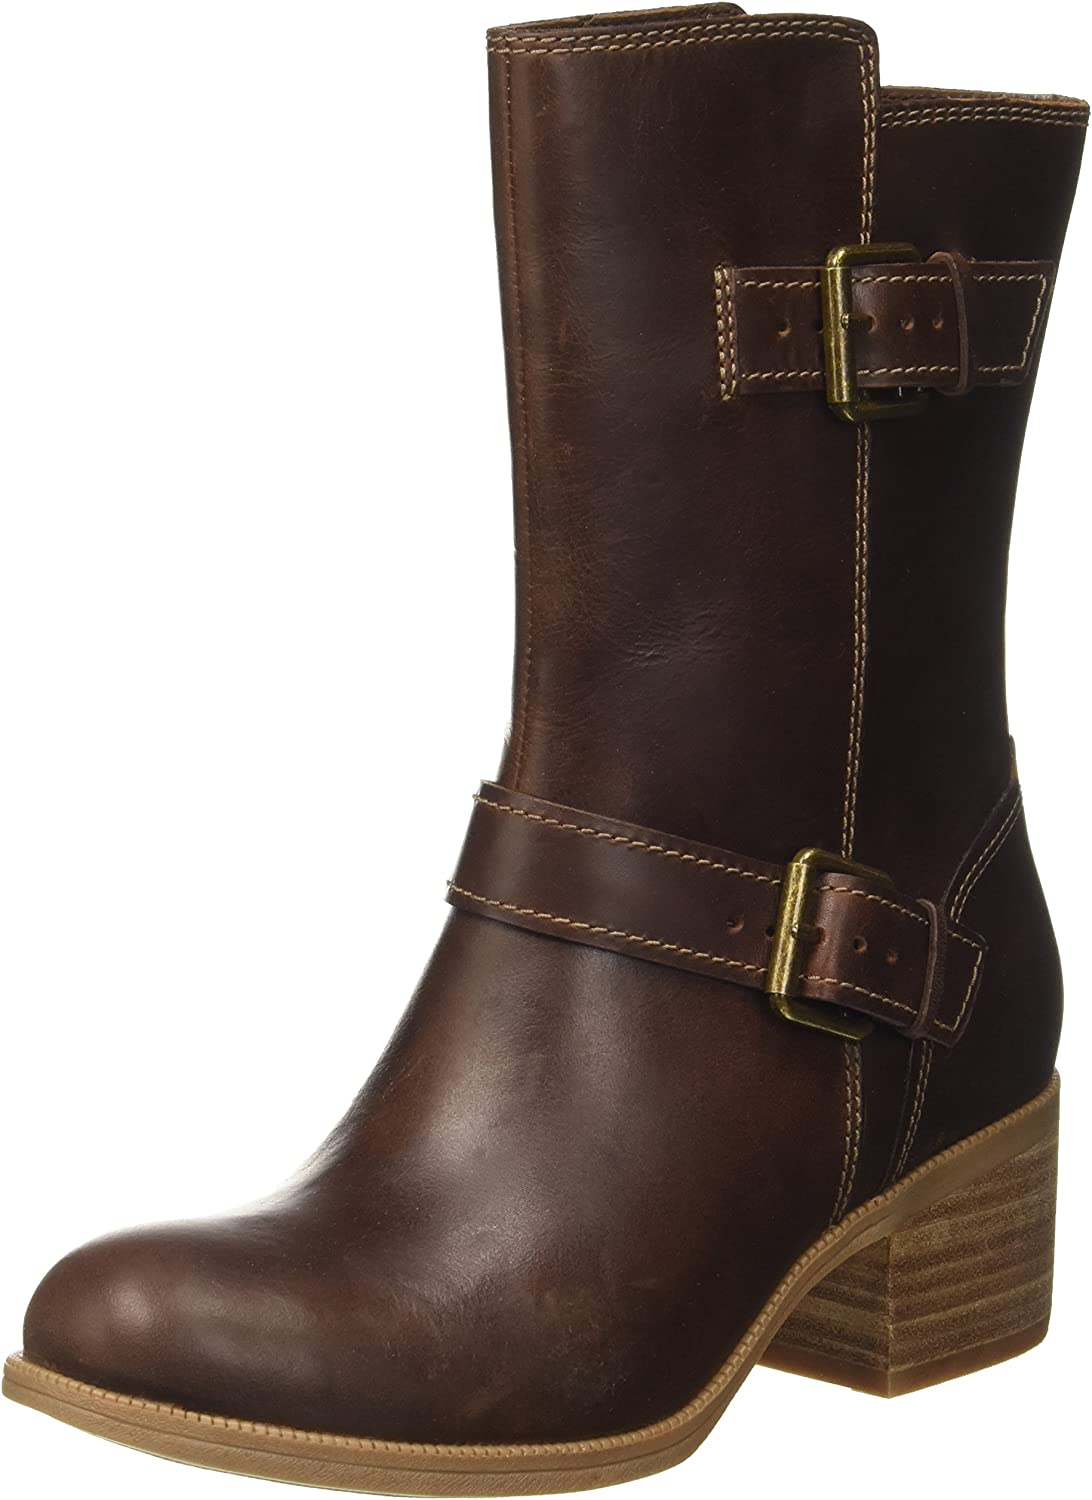 Clarks Maypearl Oasis - Dark Tan Leather (Brown) Womens Boots